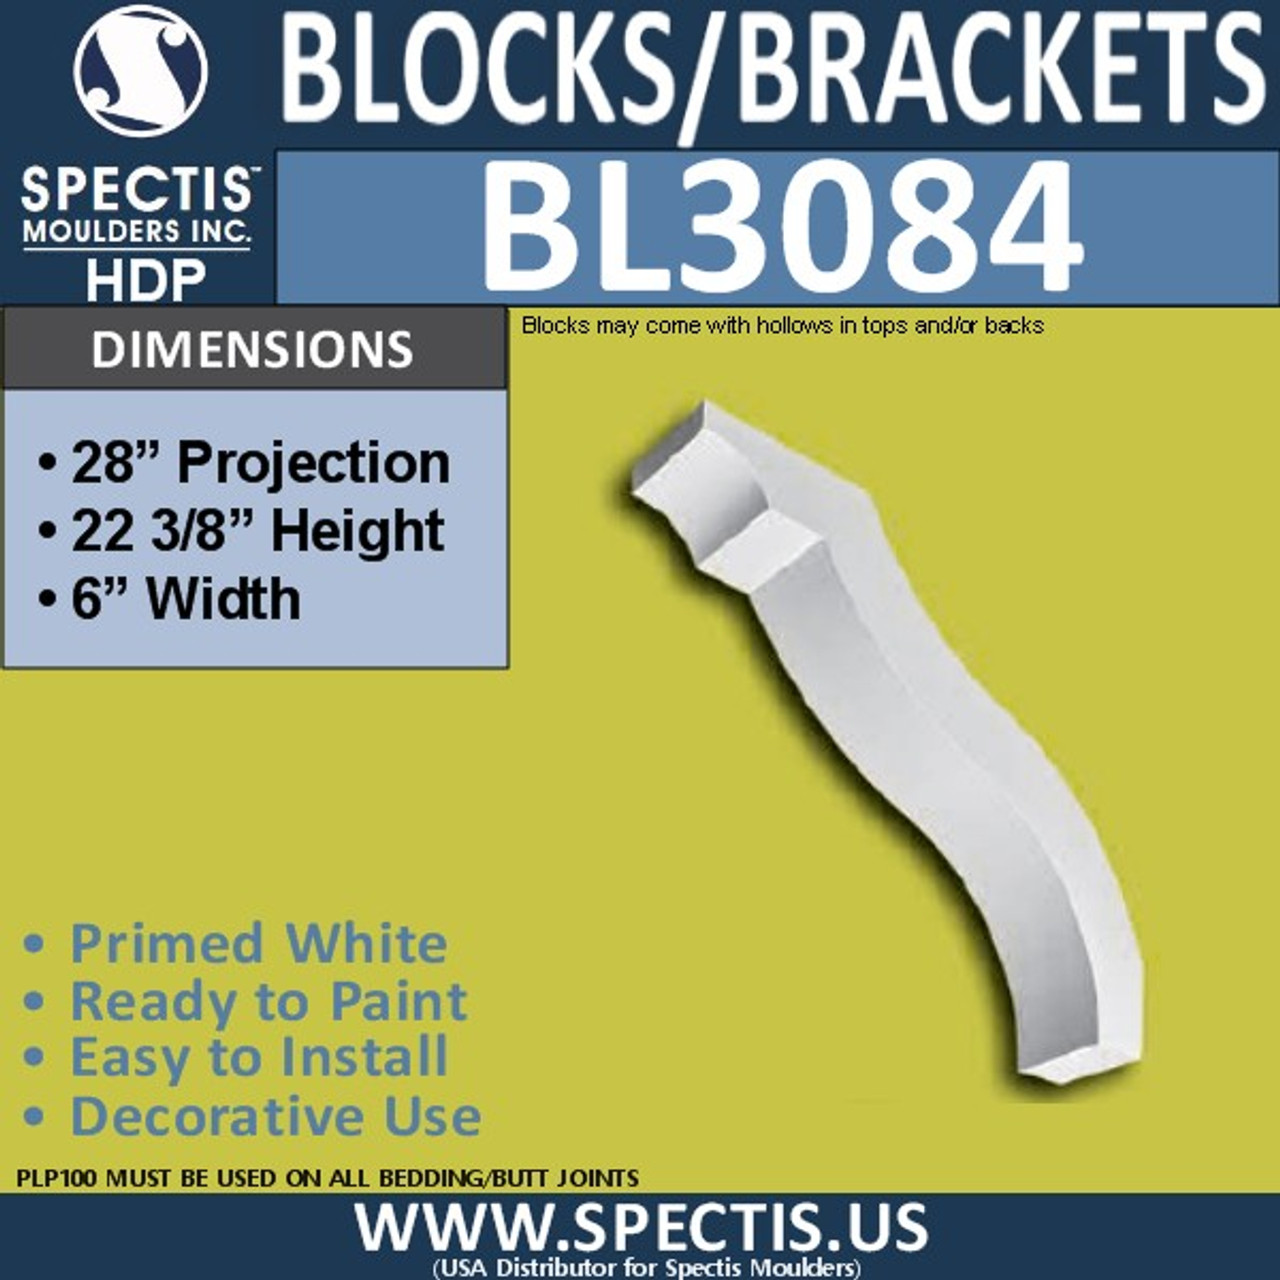 "BL3084 Eave Block or Bracket 6""W x 22.38""H x 28"" P"